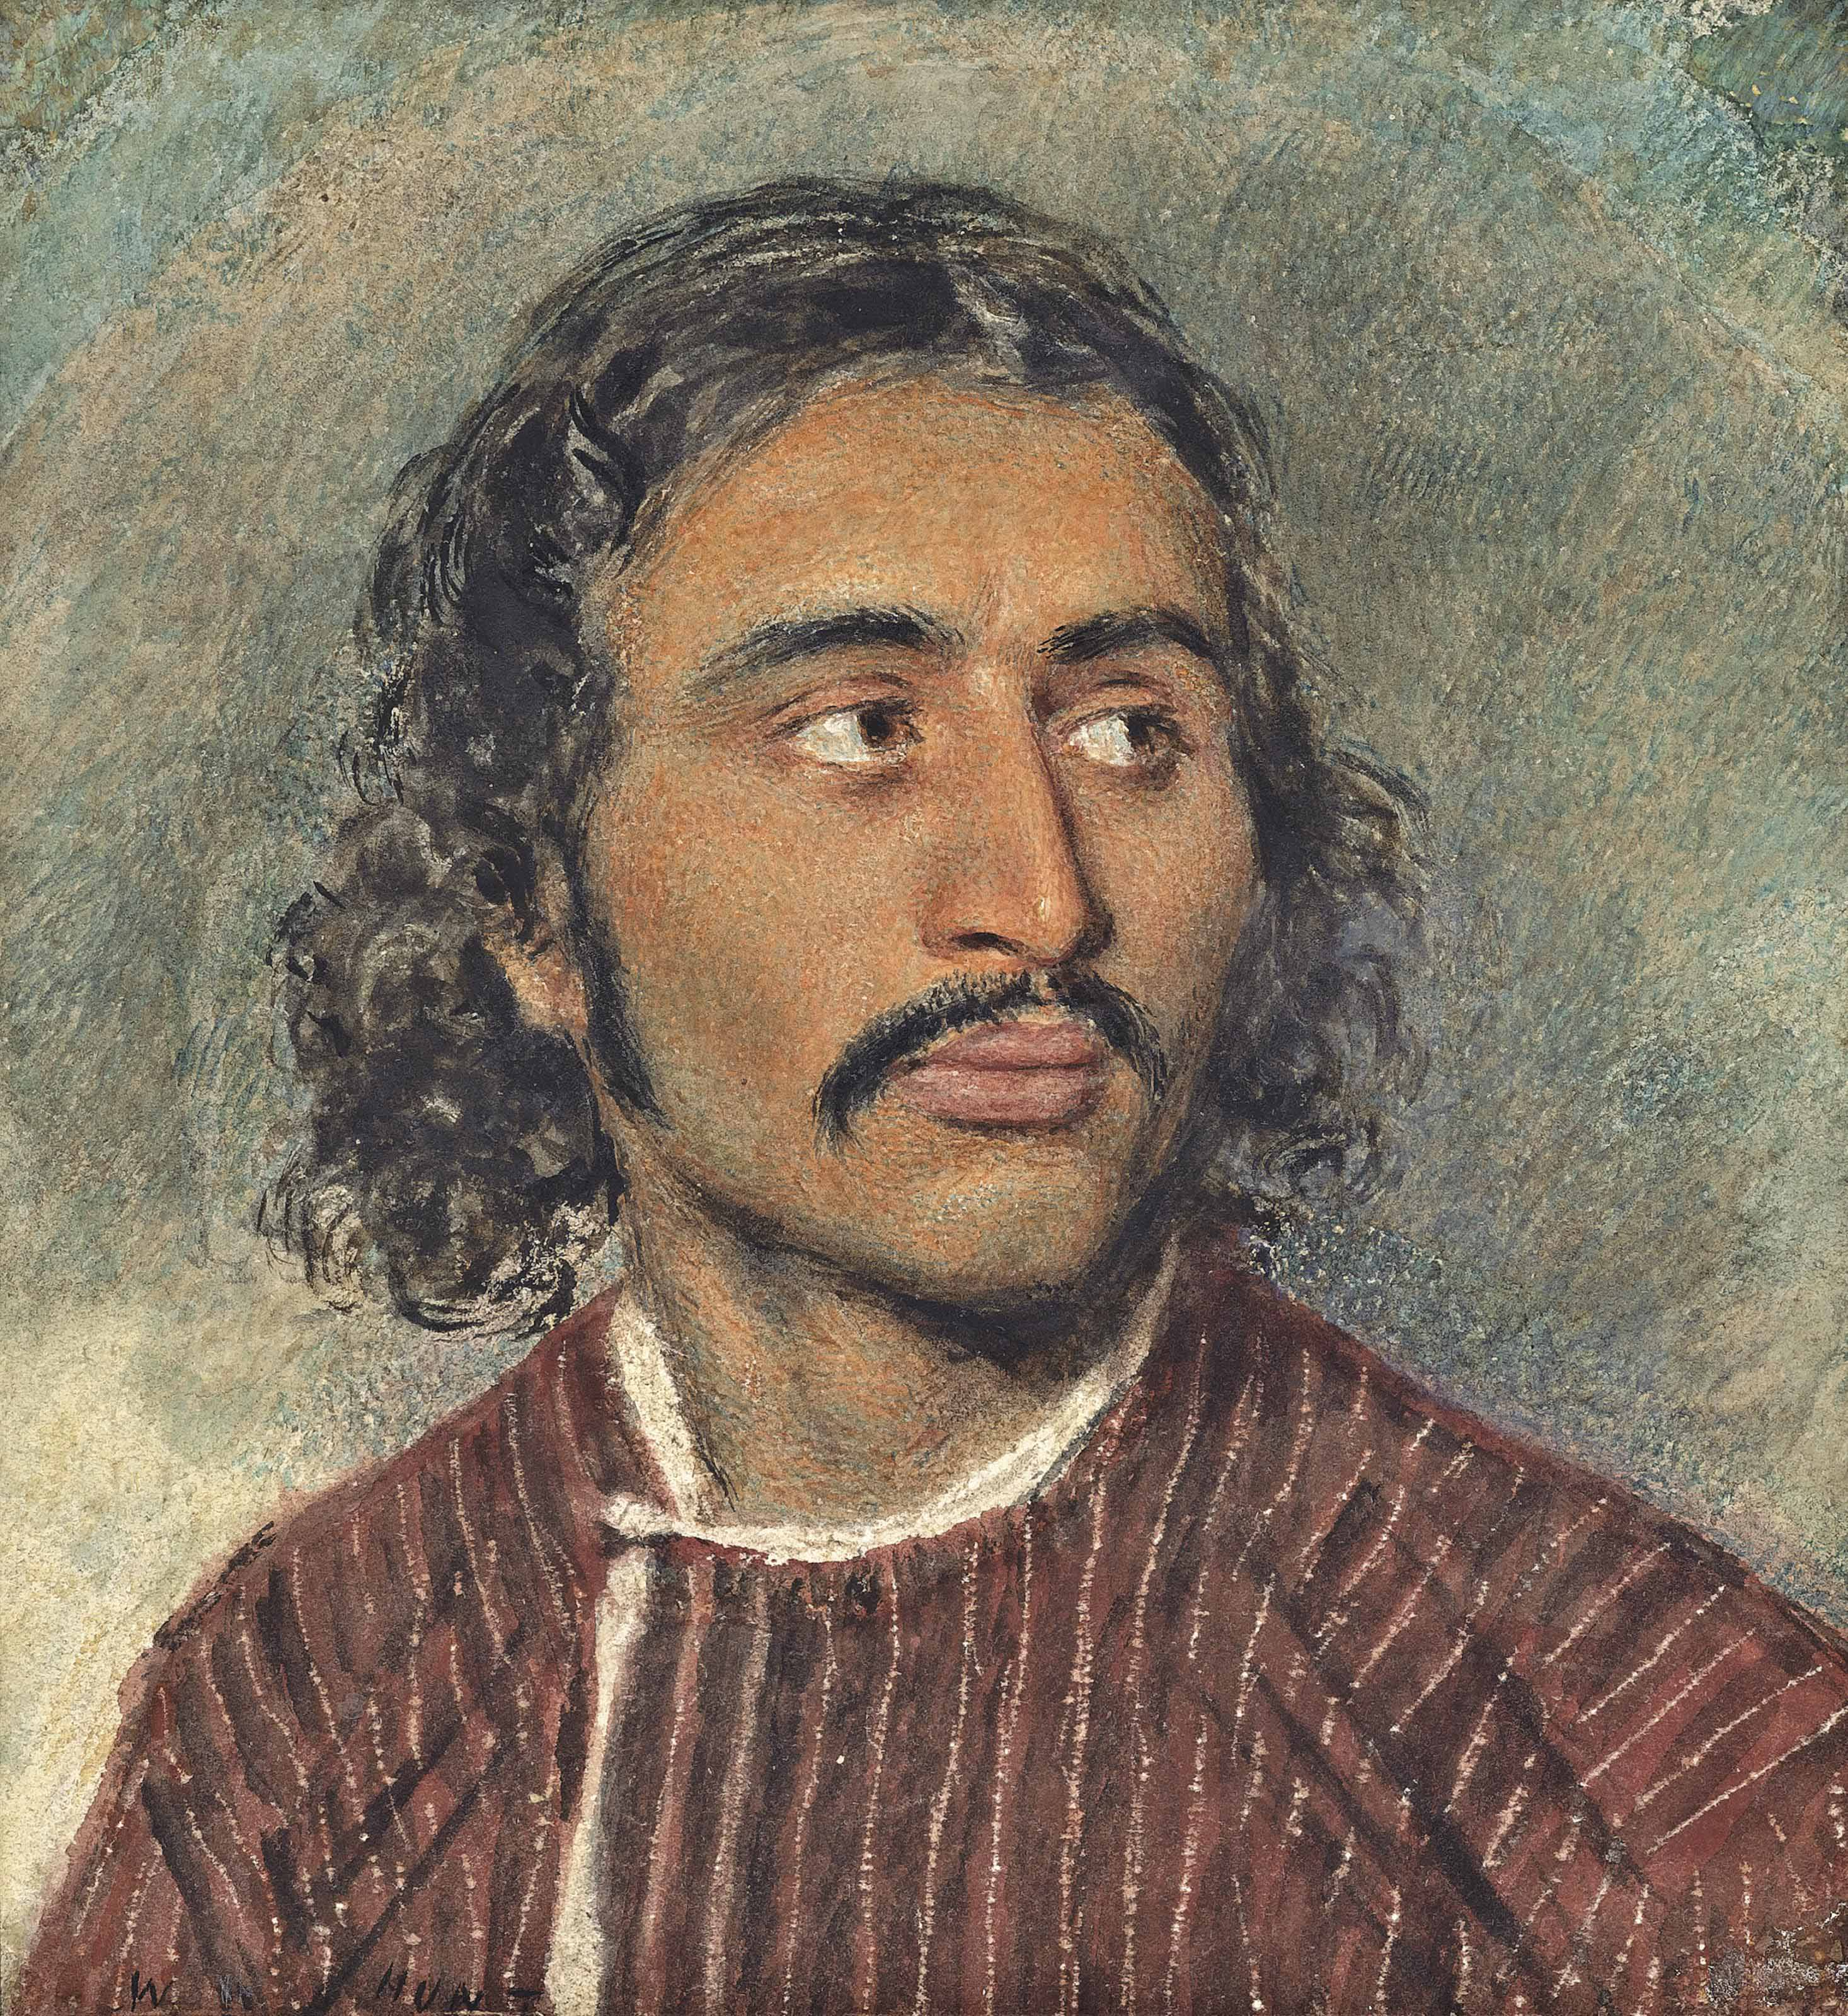 Study of the head of an Arab